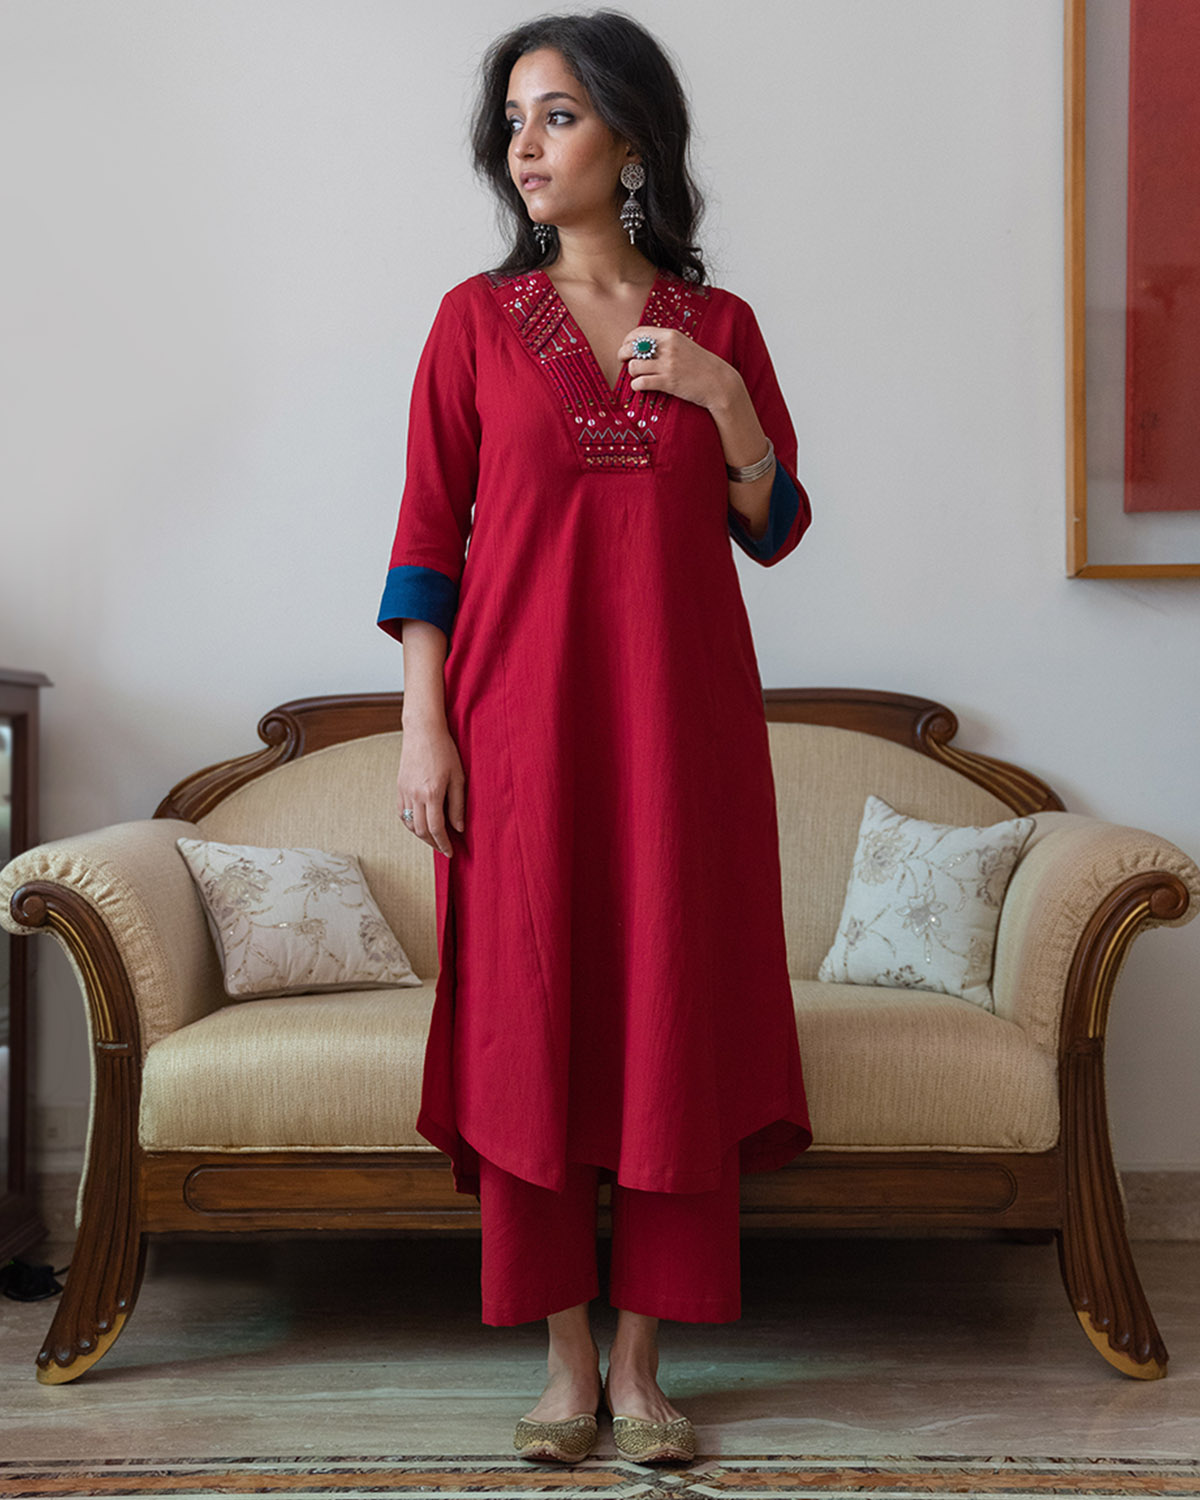 Chilly Red Handwoven Cotton Kurta with Dori & Thread Handwork